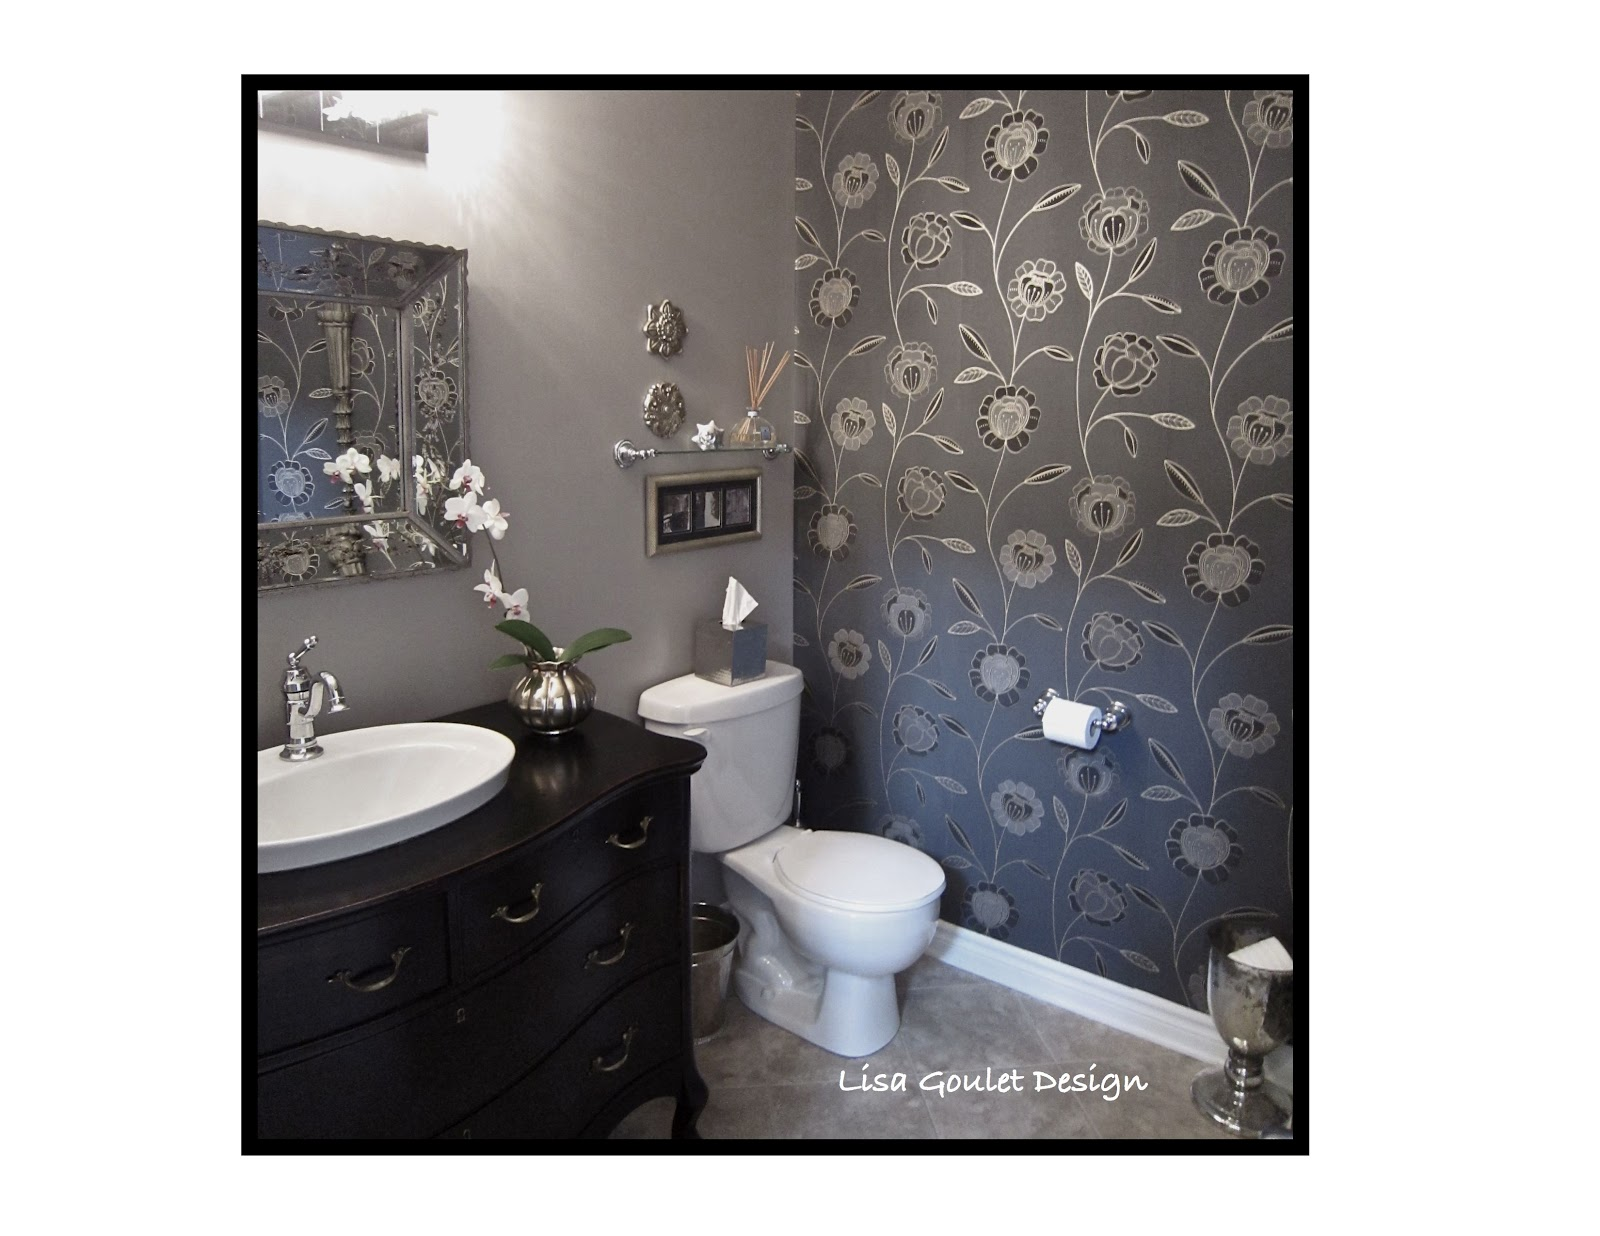 Toilet design toilet design room design ideas room for Decoration toilette